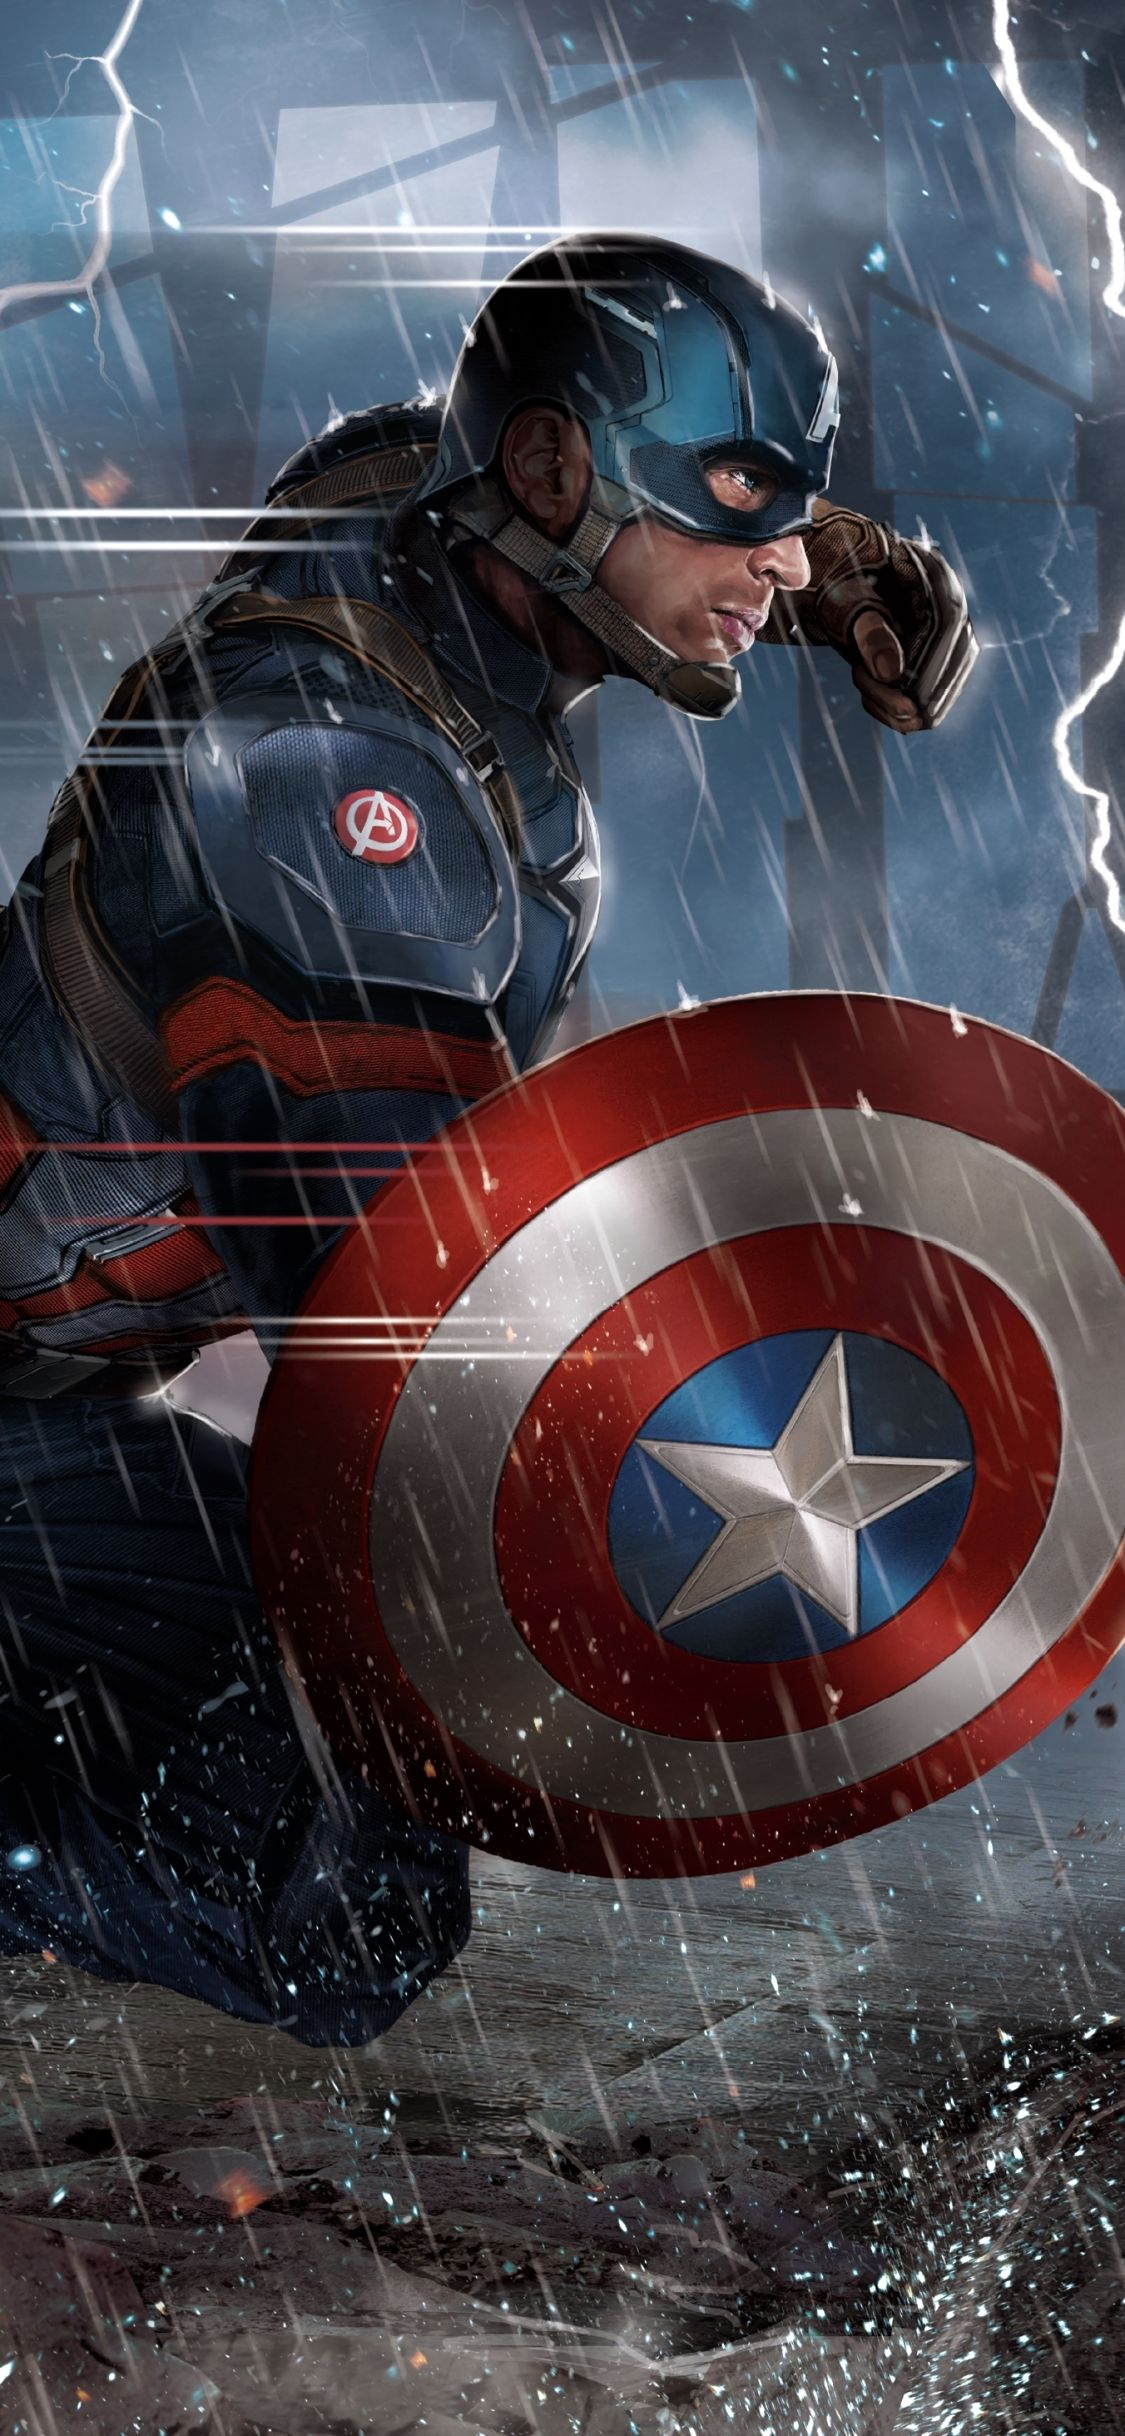 1125x2436 Captain America Phone Wallpaper - Shared by Reina | Scalsys